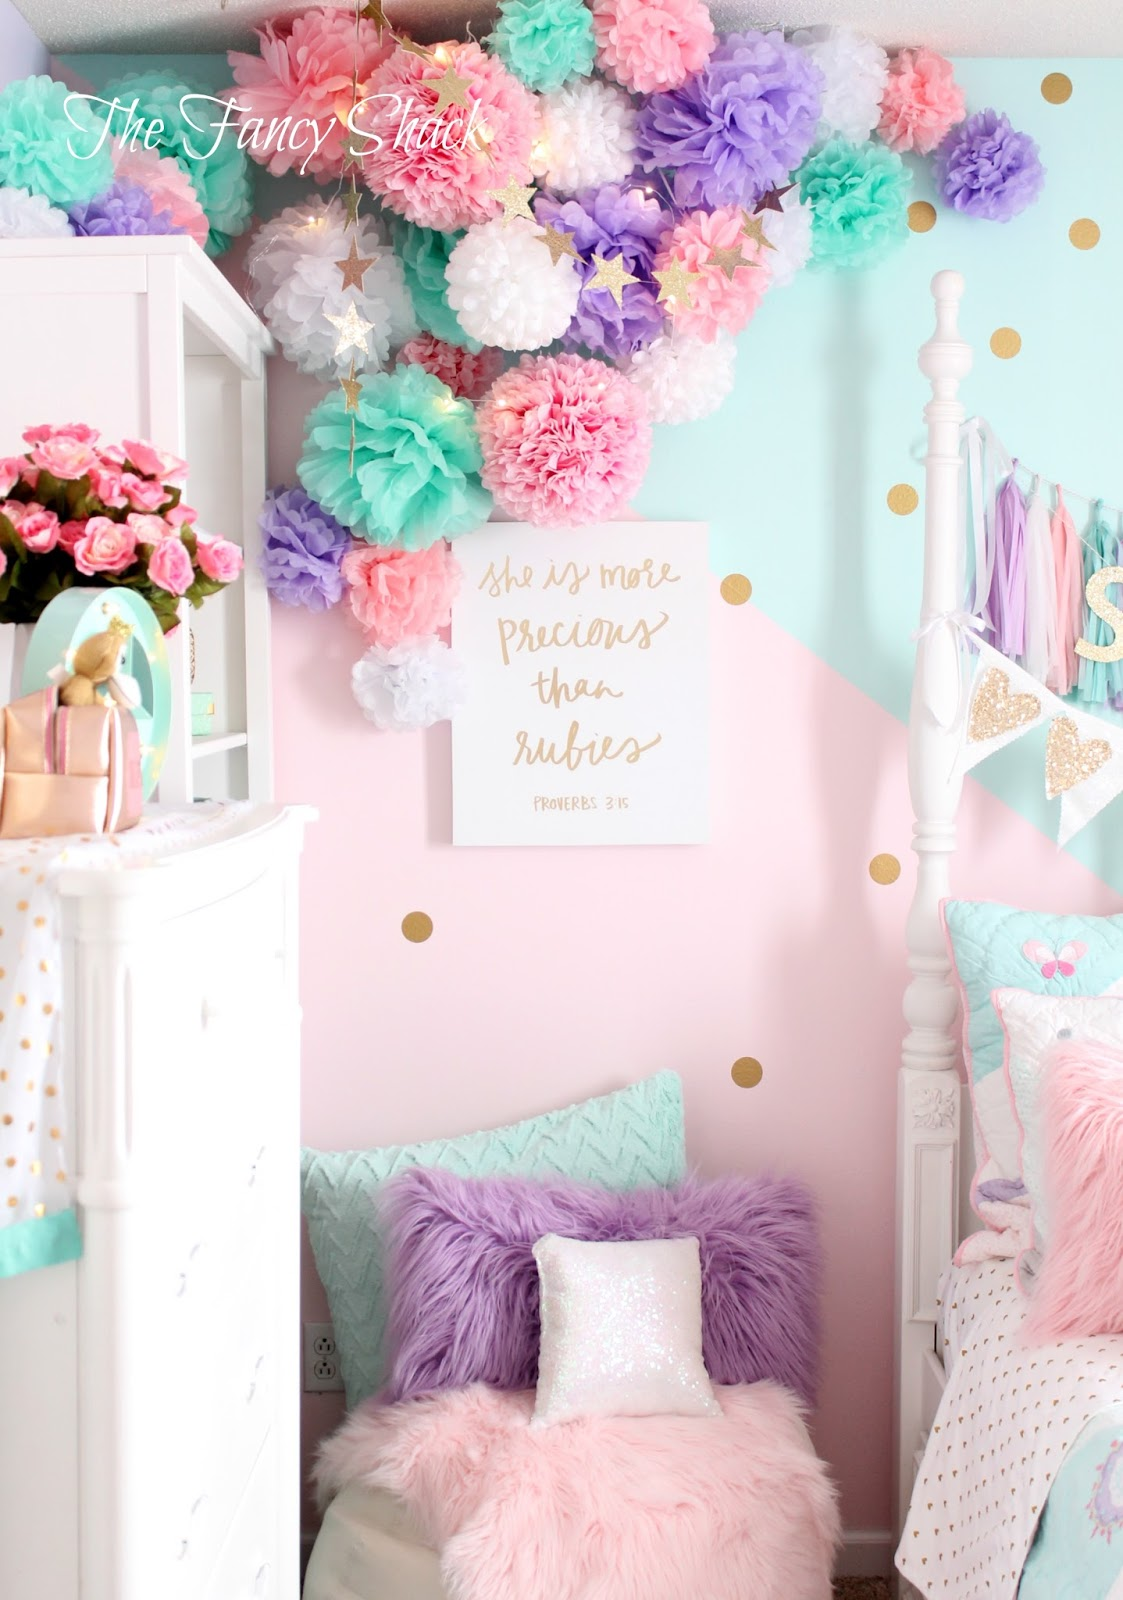 Stuff For Room Decor The Fancy Shack Pastel Girls Room Makeover